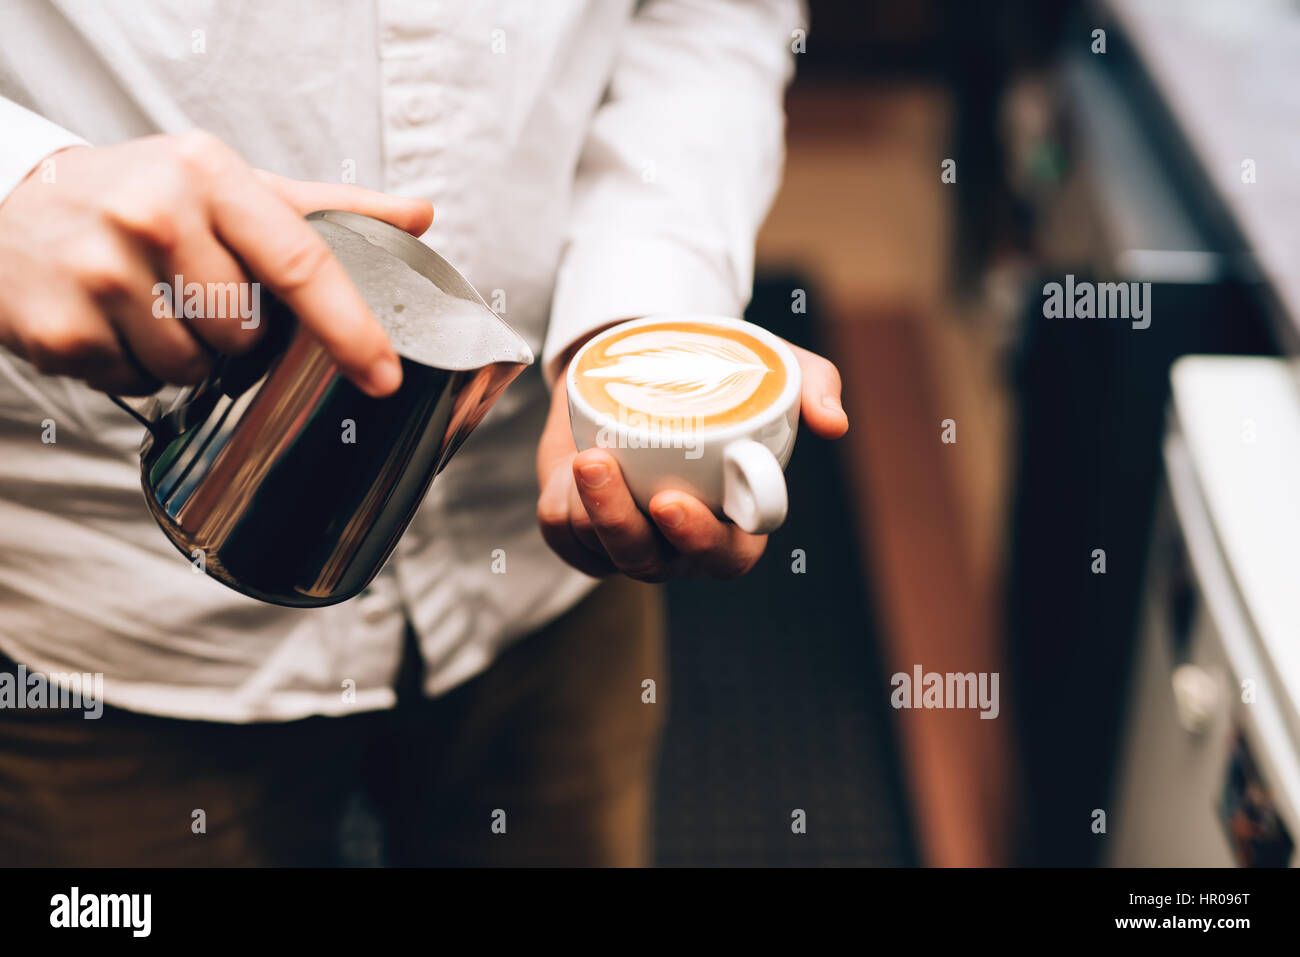 Barista pouring perfect cappuccino into cup, making a delicious morning drink - Stock Image